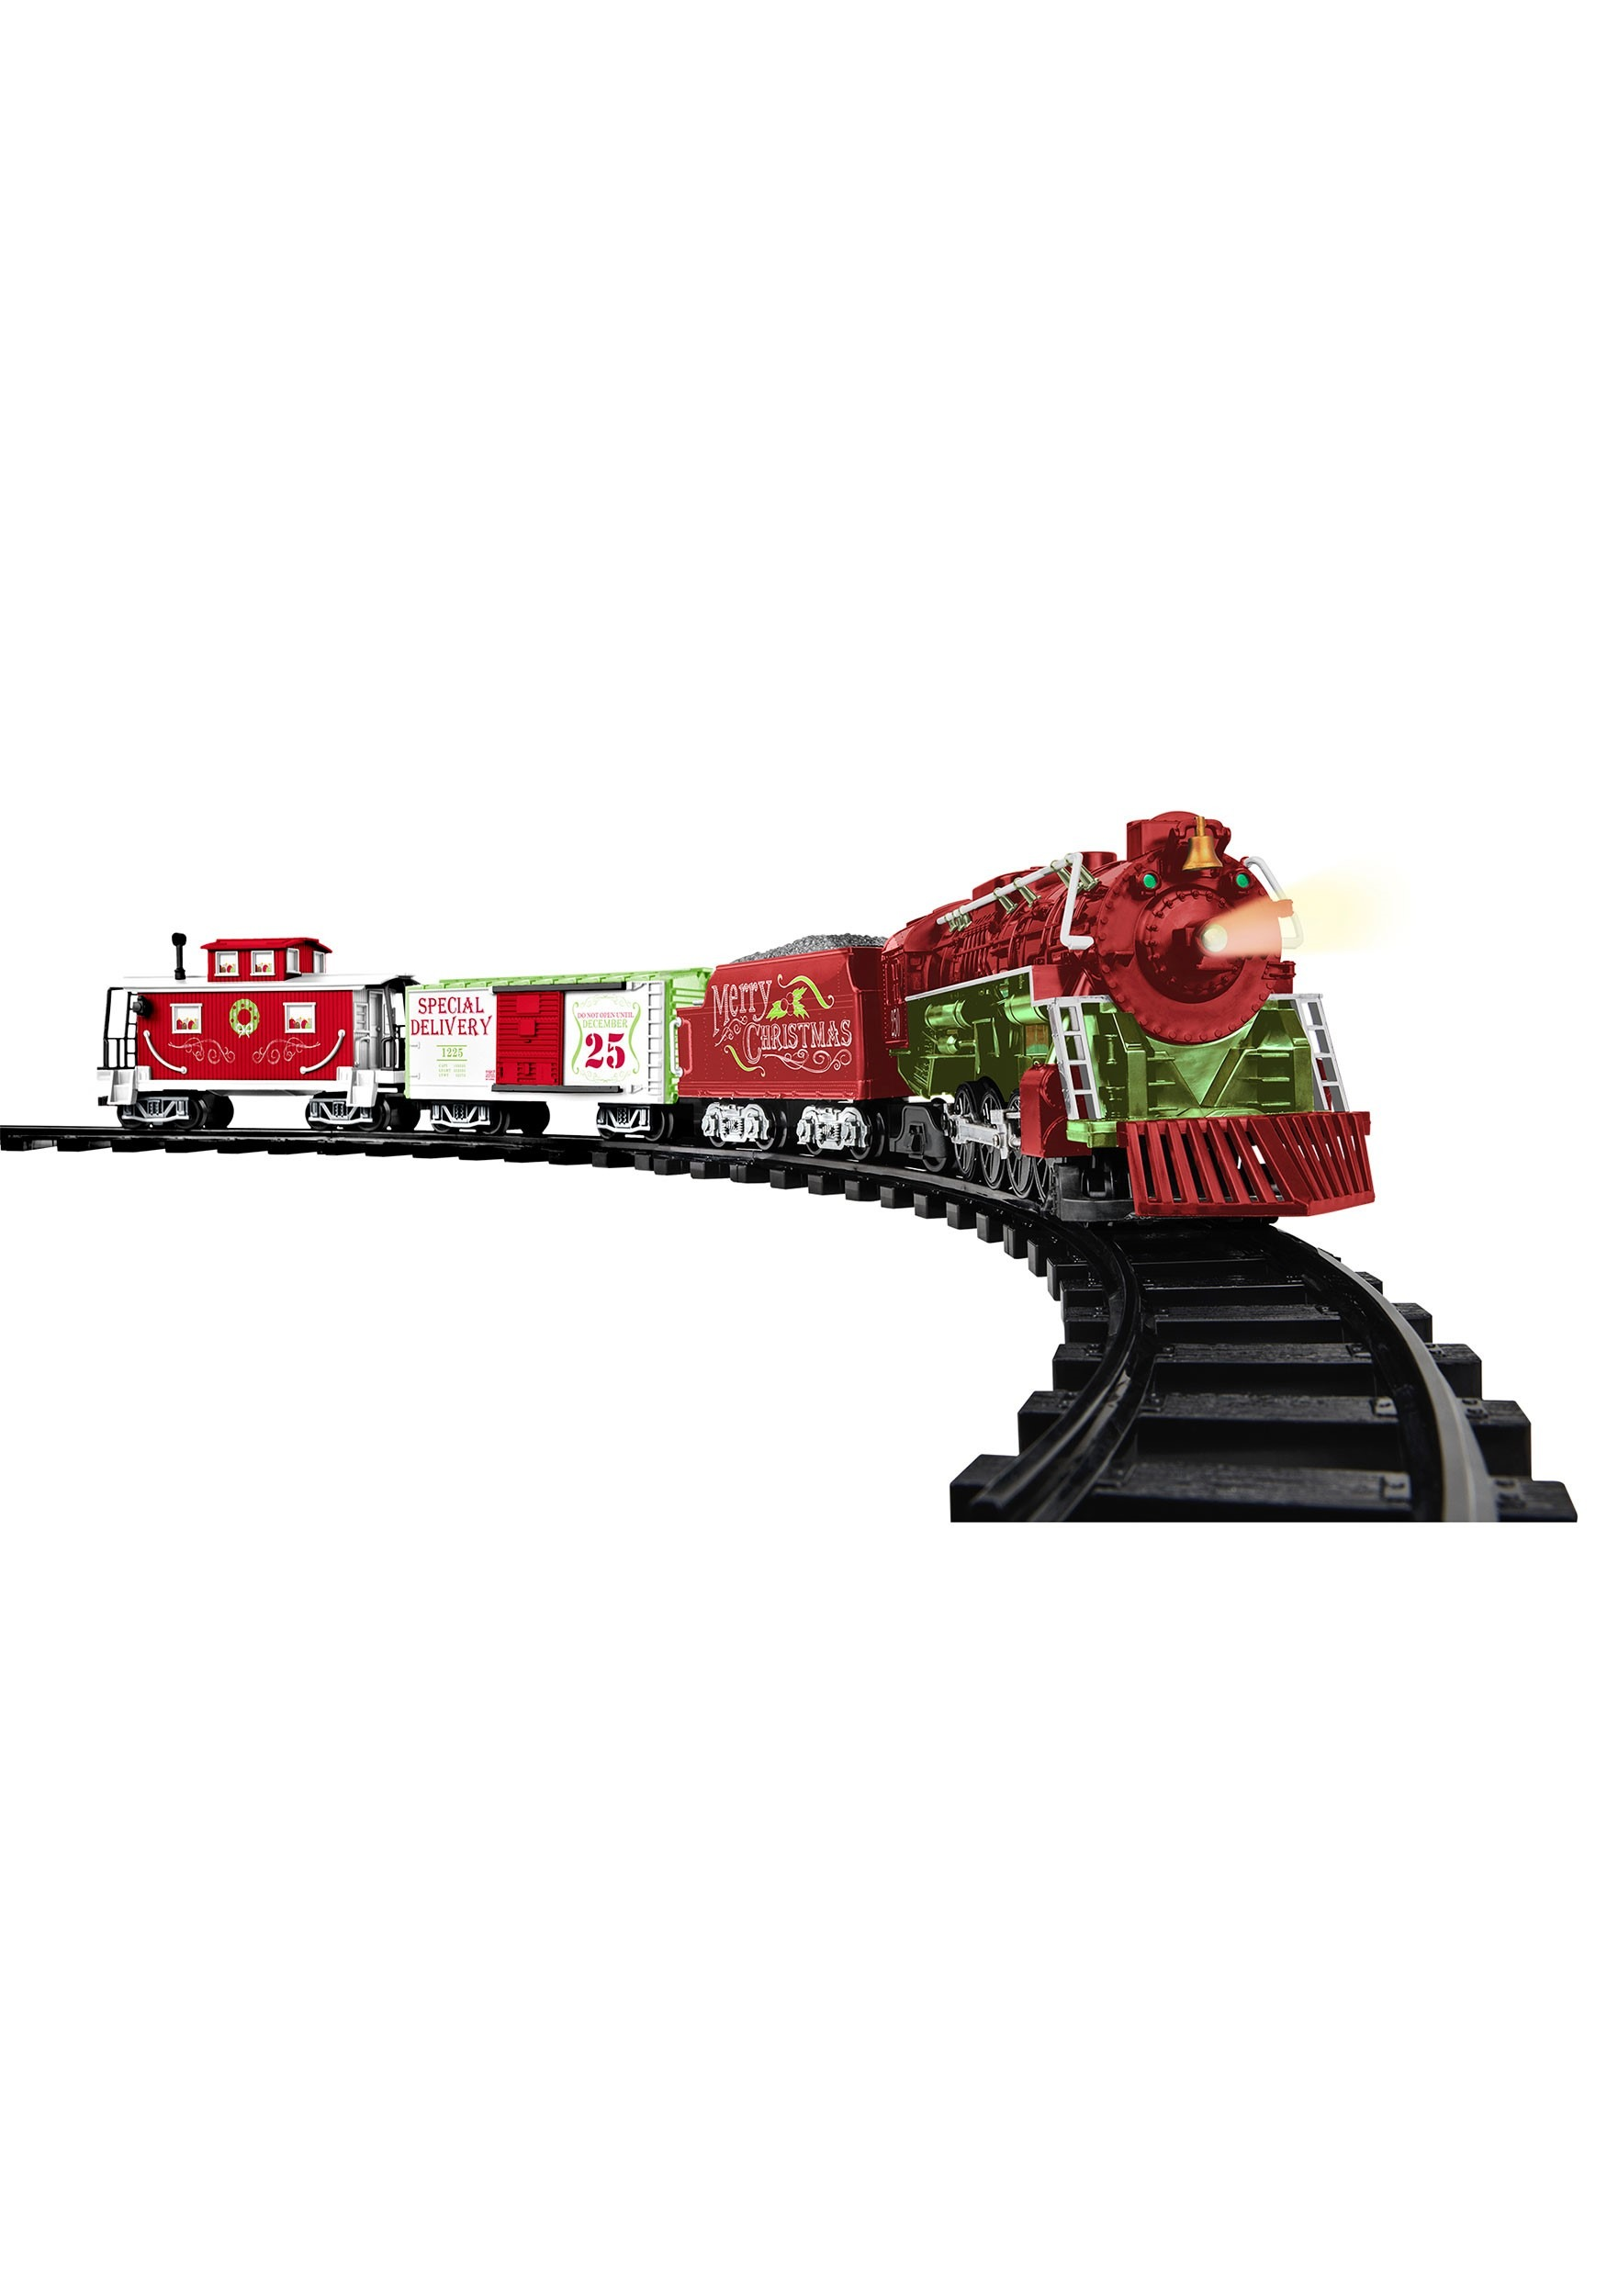 Christmas Ready-to-Play Lionel Train Set